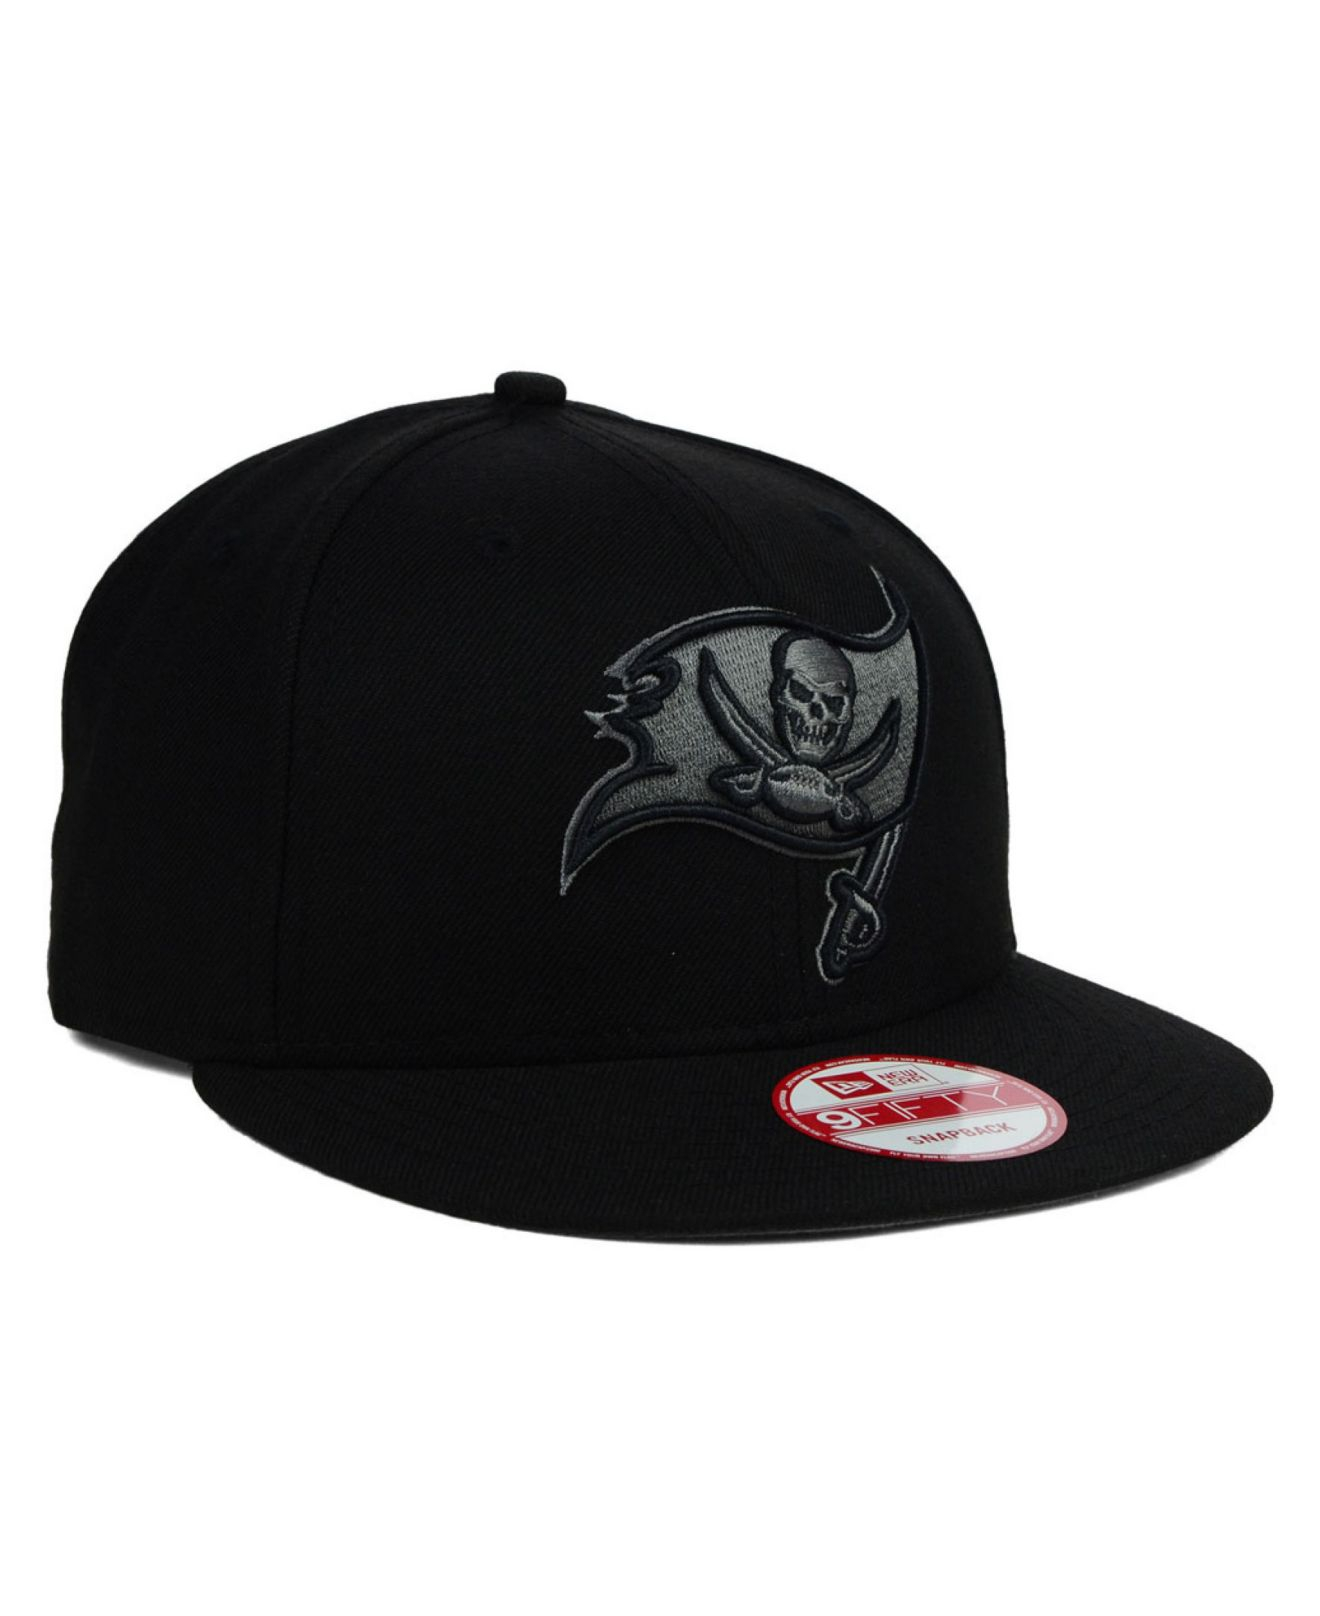 ... release date lyst ktz tampa bay buccaneers black gray 9fifty snapback  cap in 48795 5e913 bbc3abef00f1